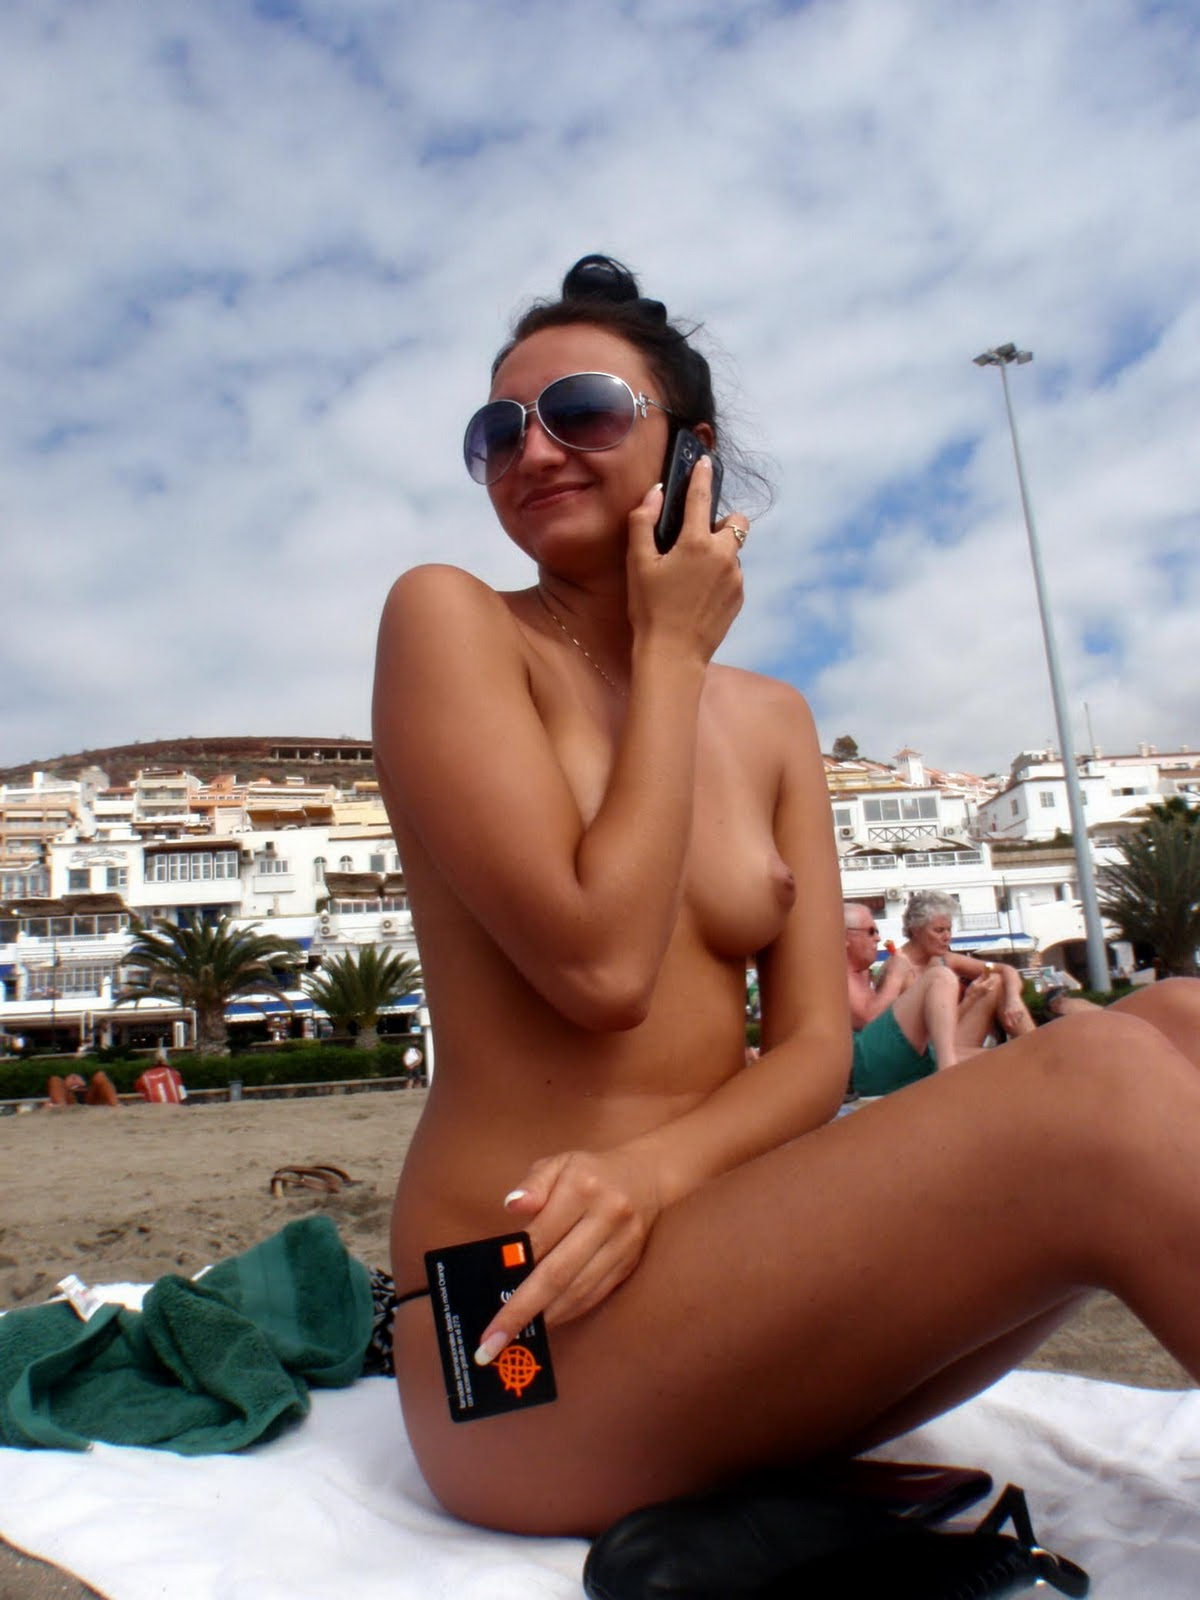 Sexy European Brunette Topless On Vacation At The Beach -4852